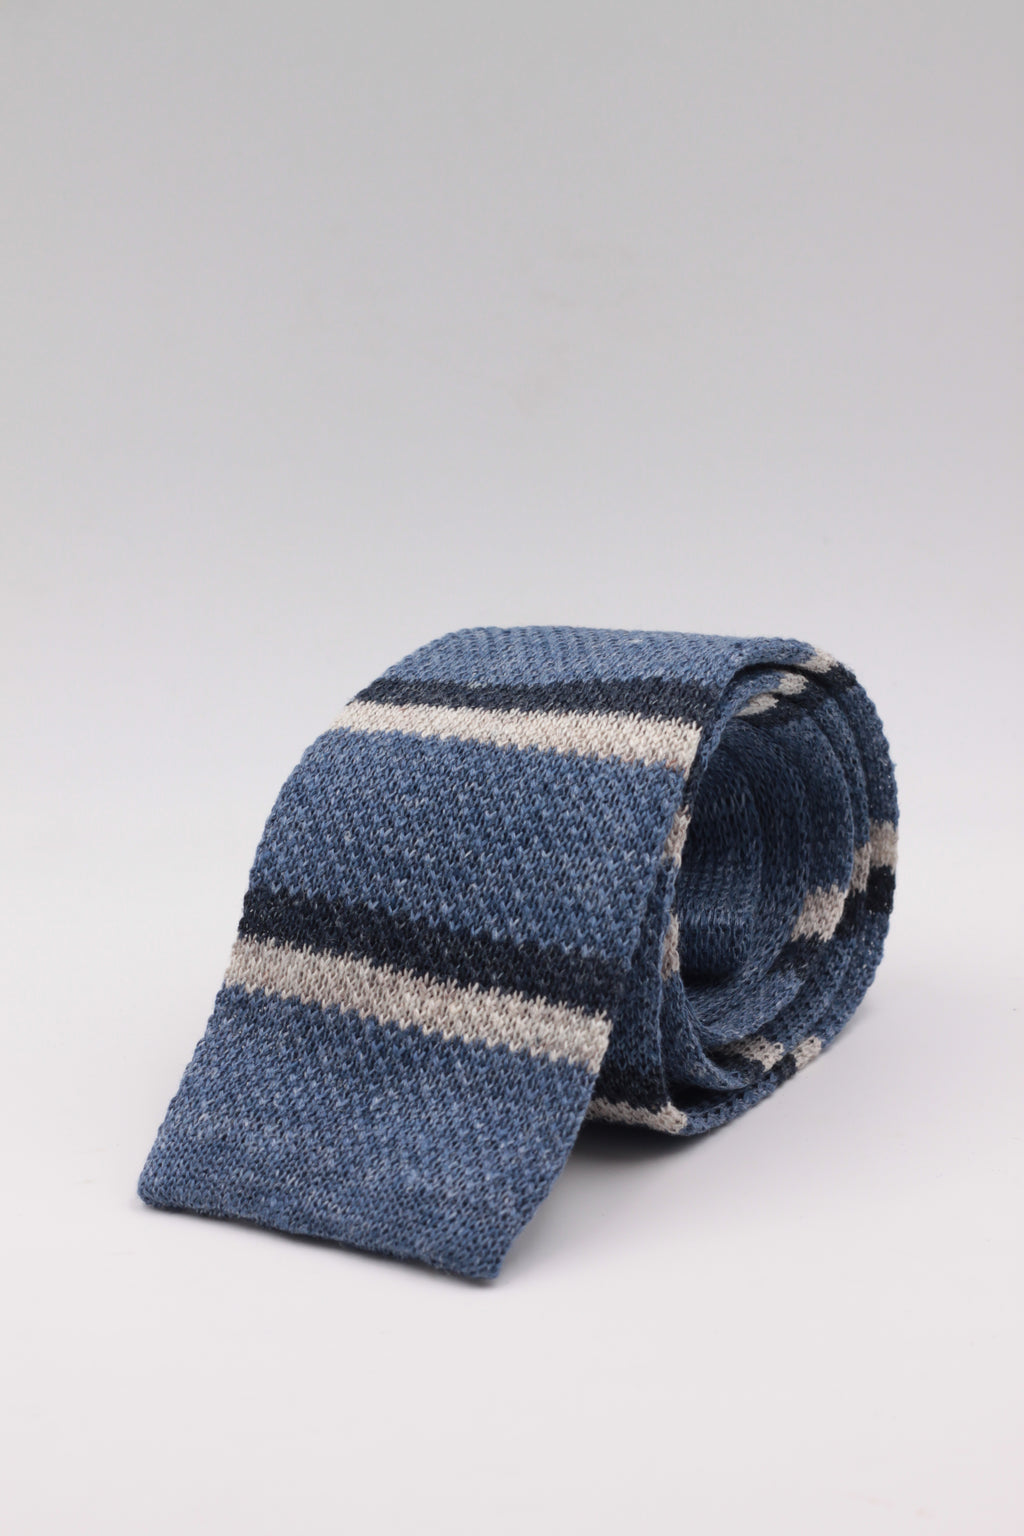 Cruciani & Bella 100% Knitted Linen Light Blue, Sand and Blue stripe tie Handmade in Italy 6 cm x 146 cm